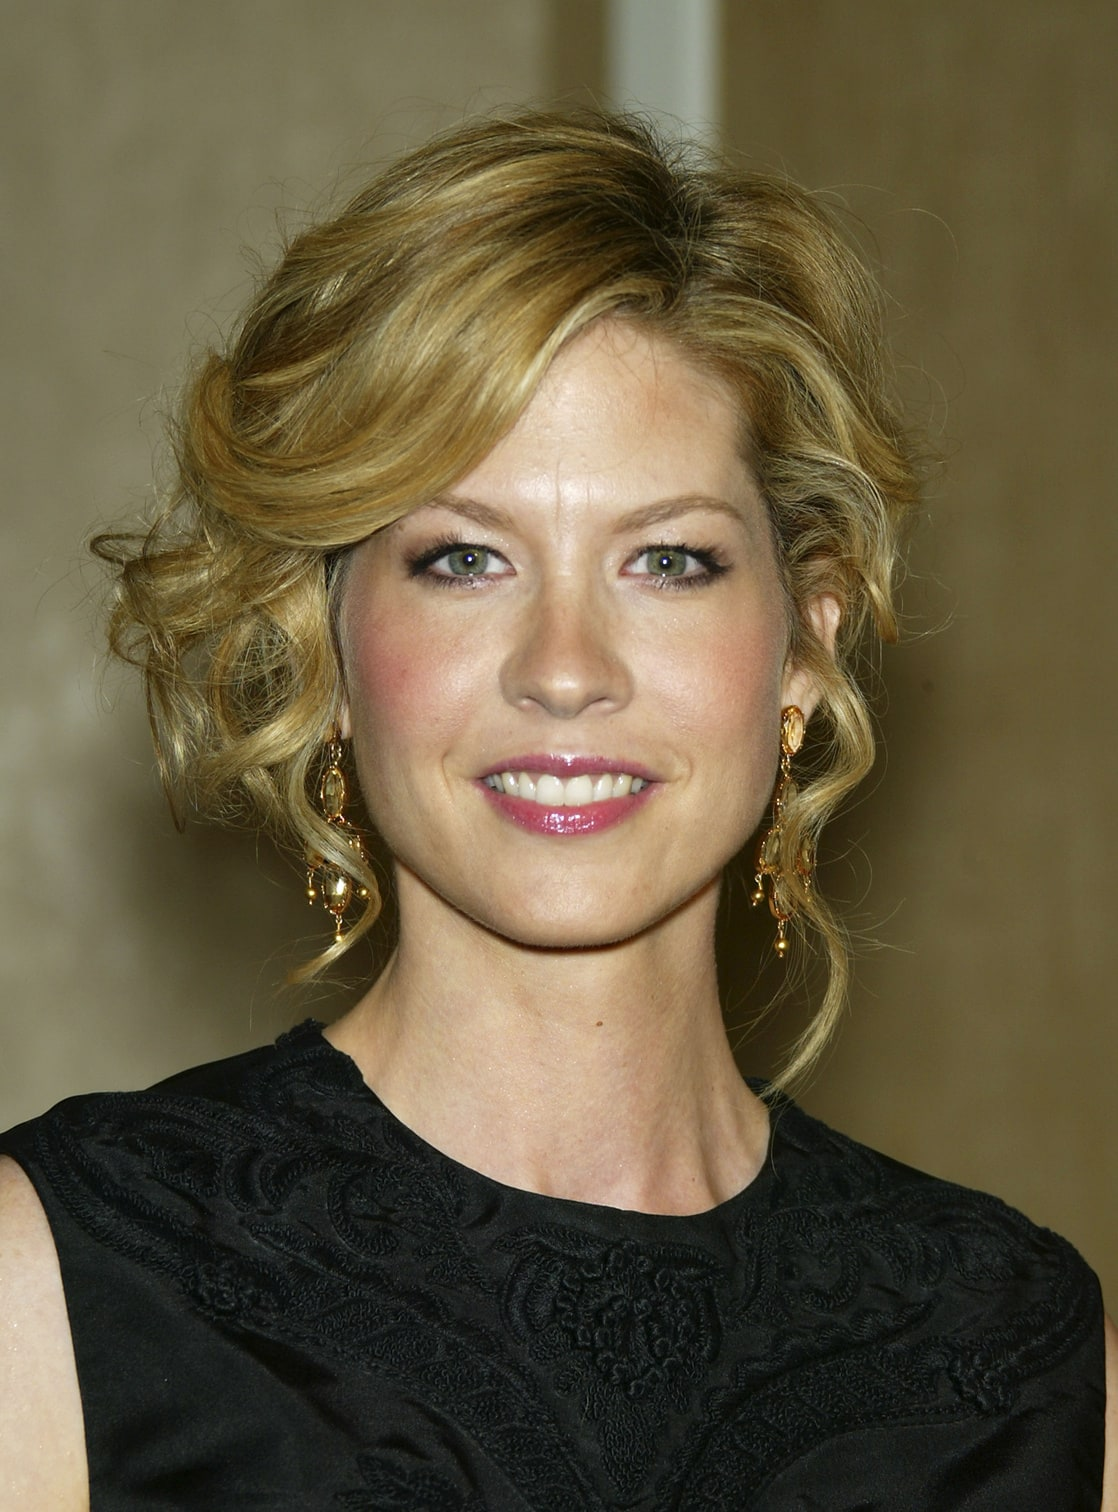 Images Of Image Search Jenna Elfman Calto